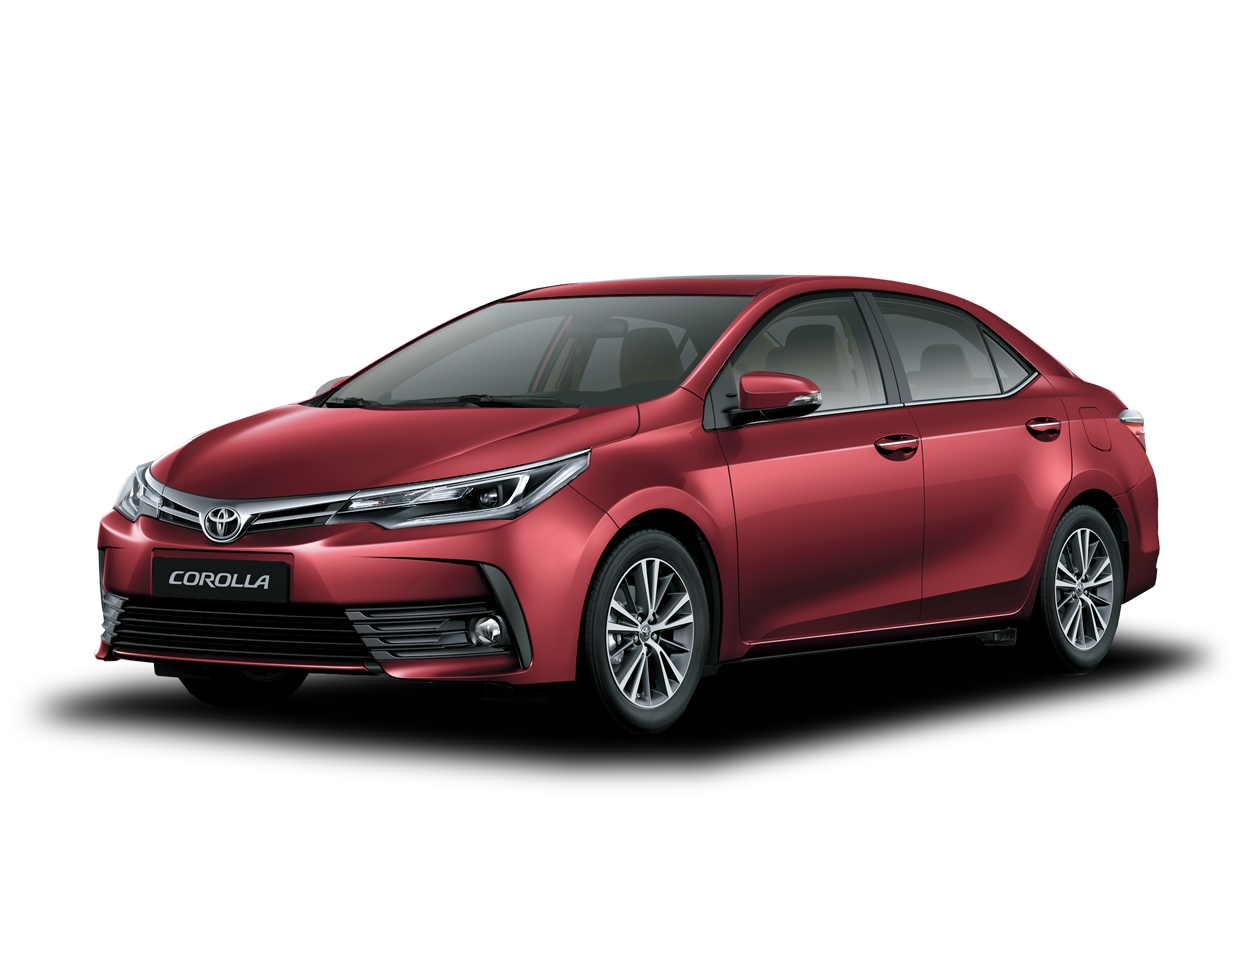 Price starts at : 25,200 USD - Toyota Altis PNG